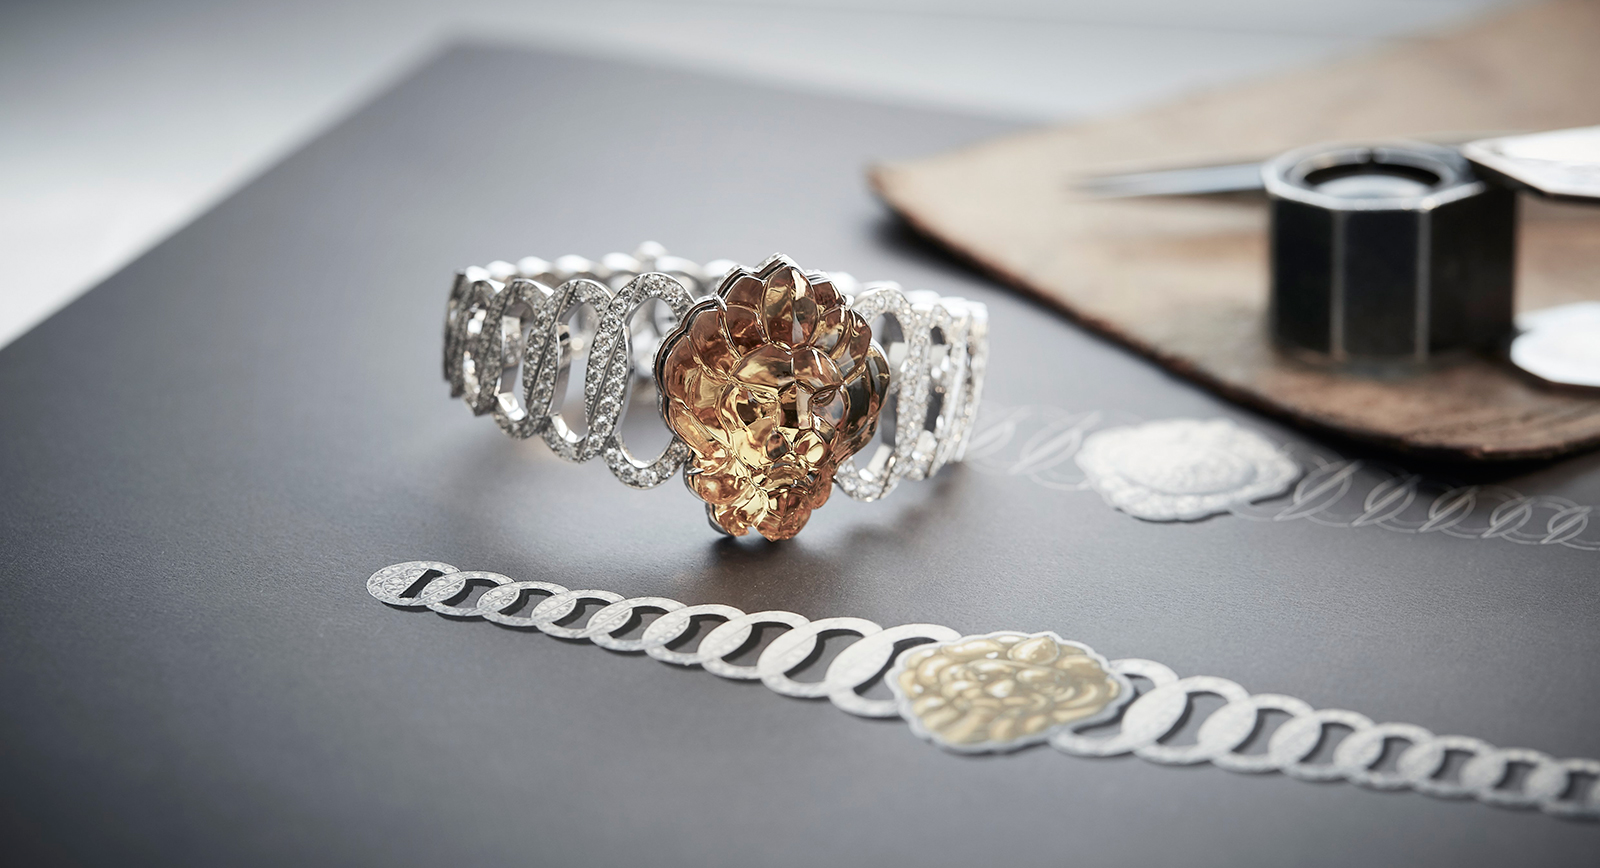 L'Esprit du Lion high jewellery secret watch in 18 carat white gold, set with a 37.41 carat hand-carved beryl and diamonds